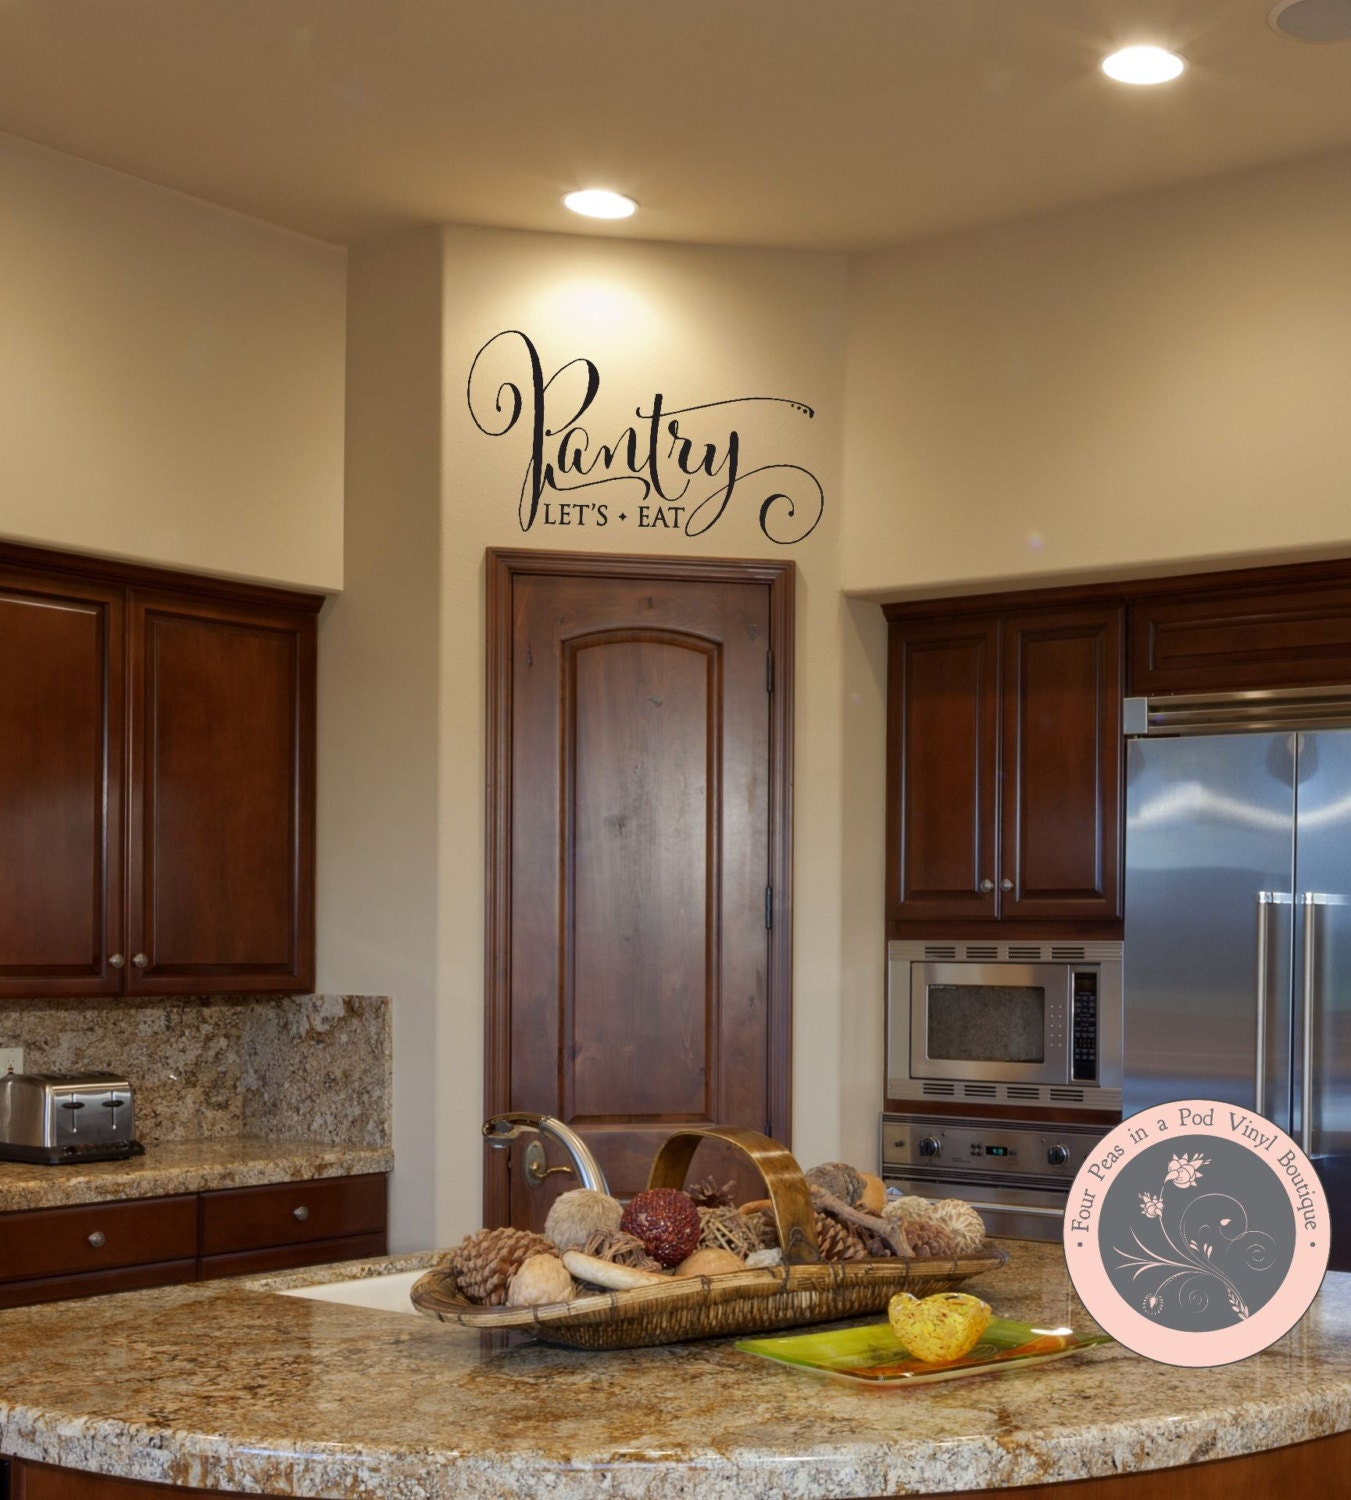 Kitchen Wall Vinyl: Wall Decals For The Home Pantry Wall Decal Kitchen Wall